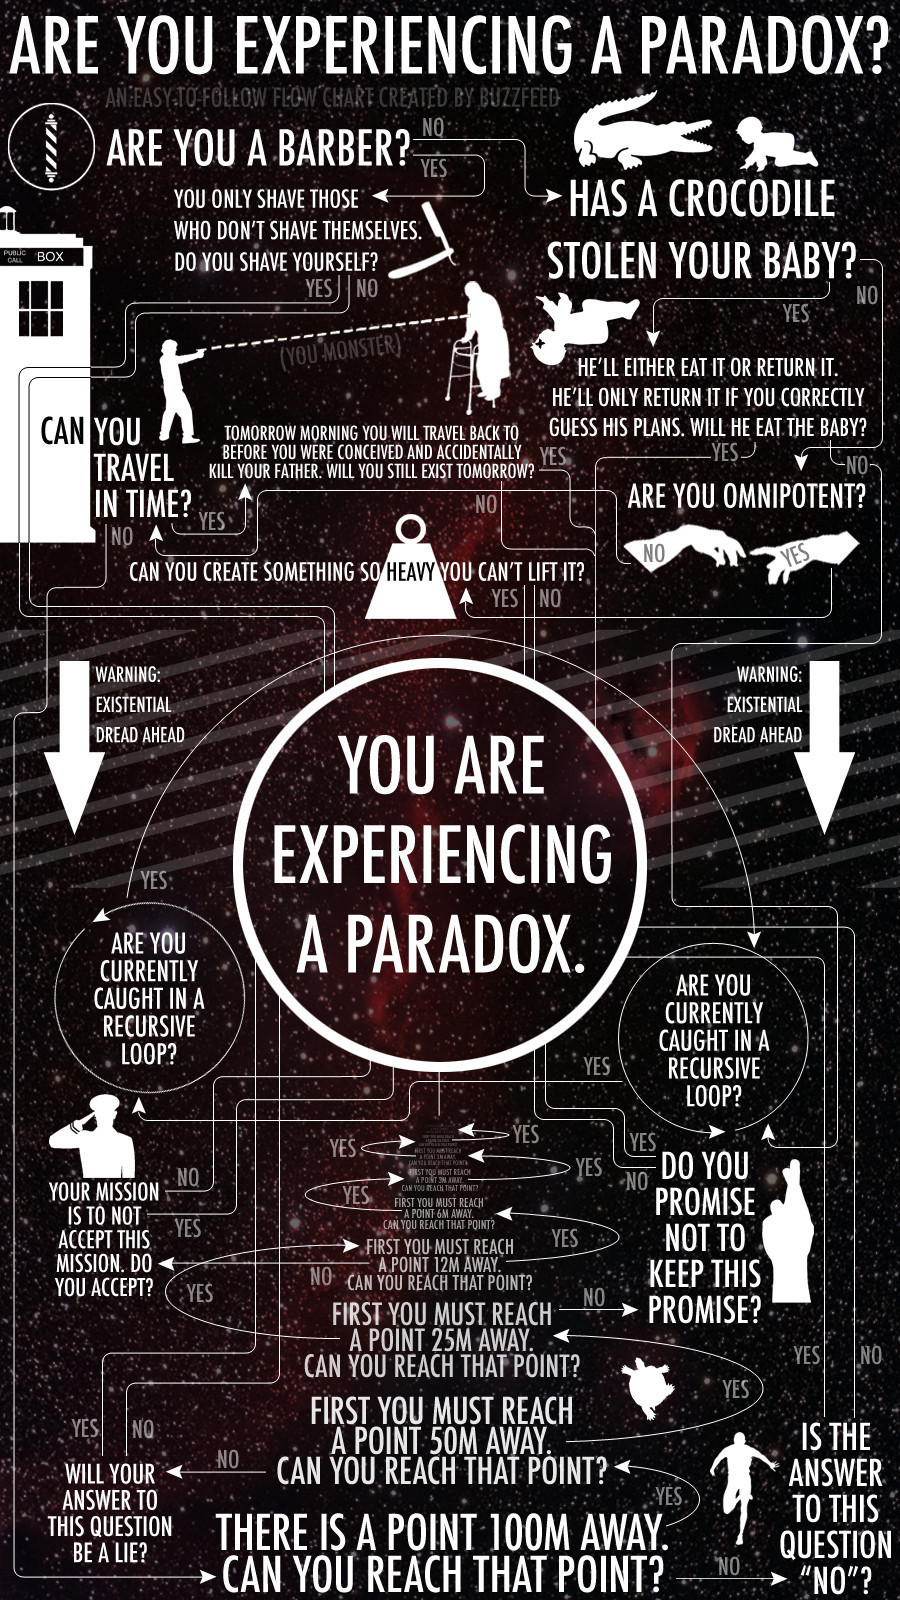 Are You Experiencing A Paradox? (FLOWCHART) | HuffPost